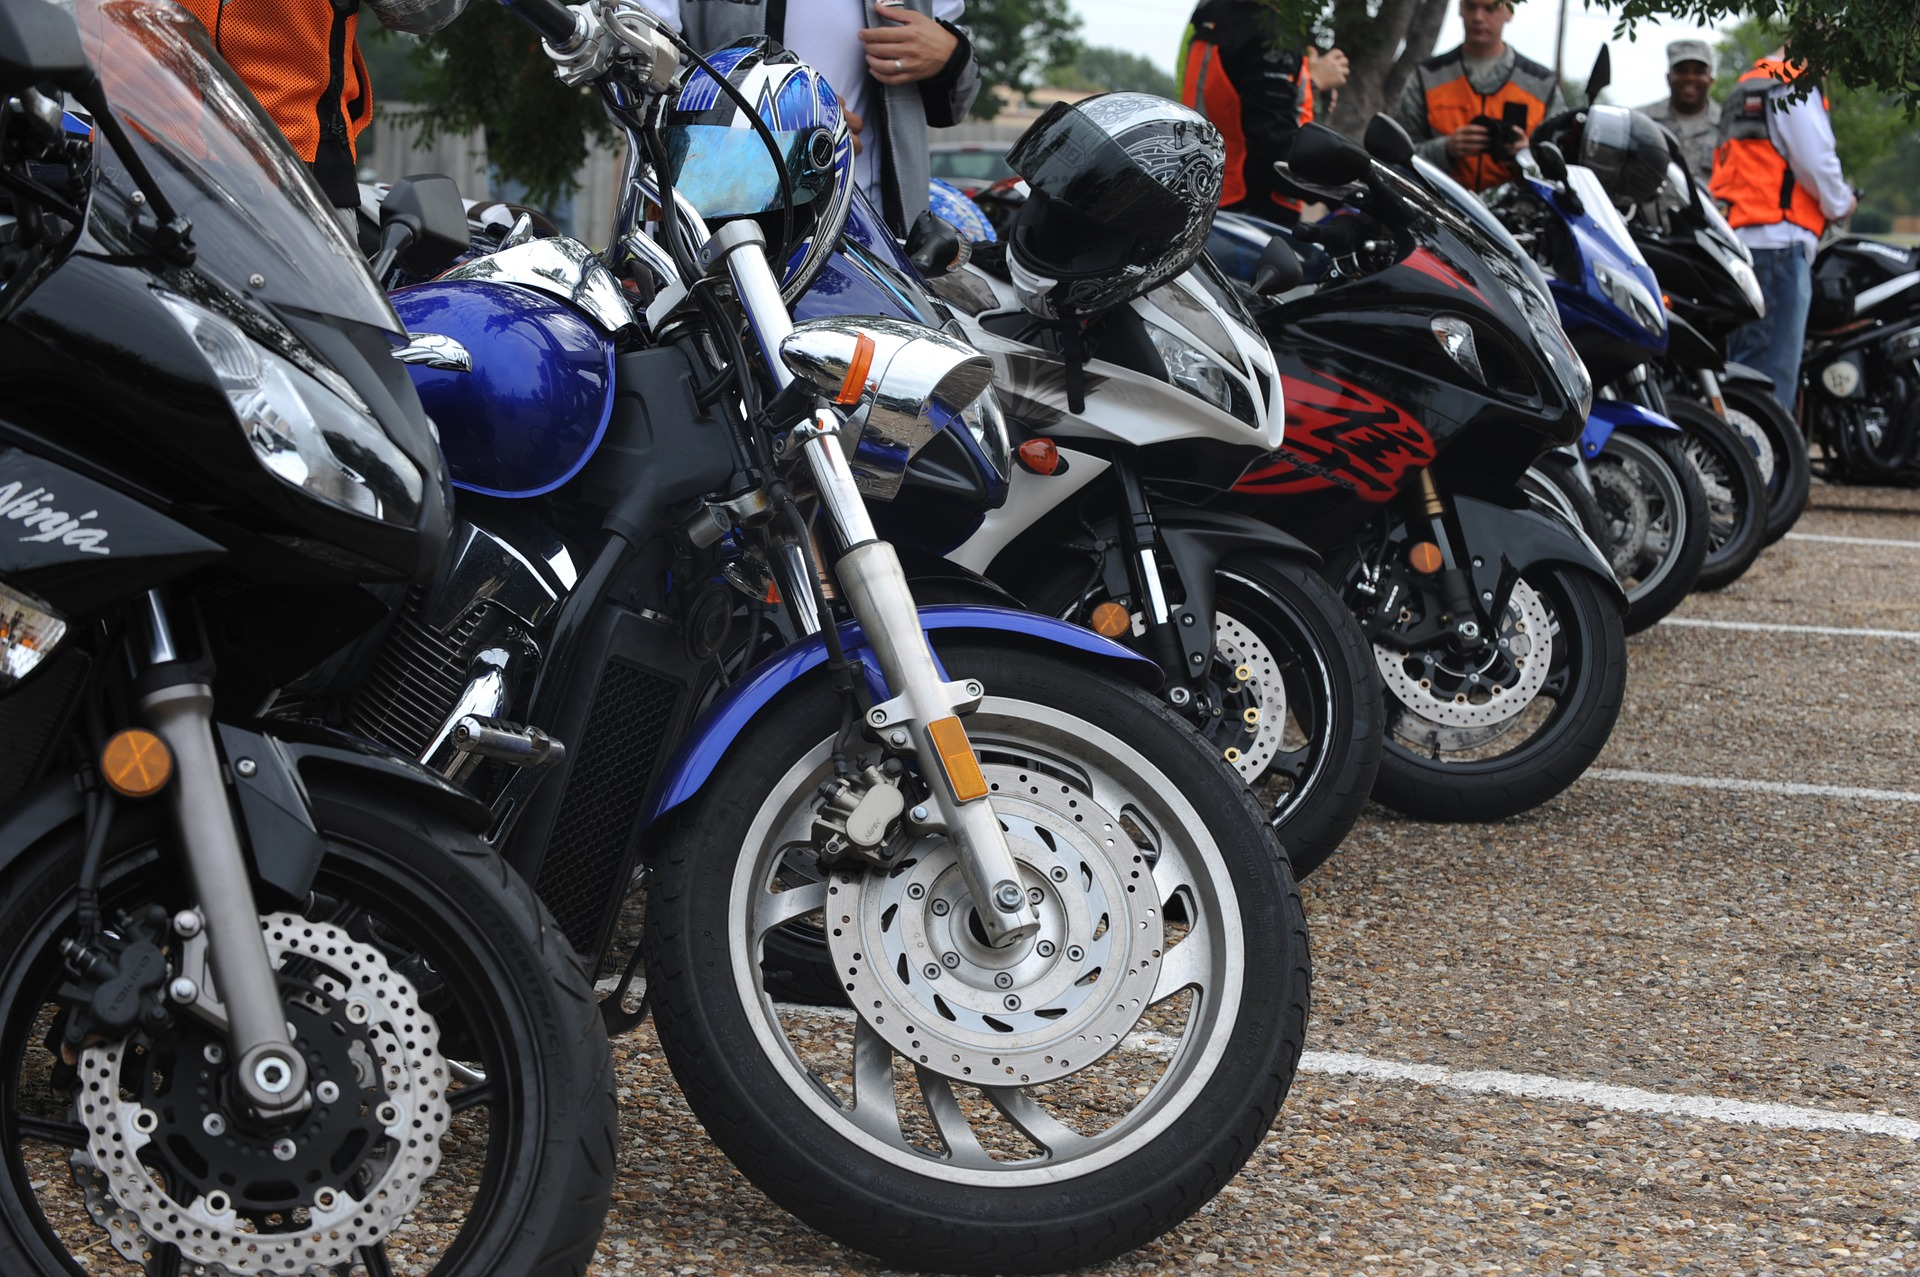 Motorcycle Stand, Bike, Motorcycle, Park, Parking, HQ Photo